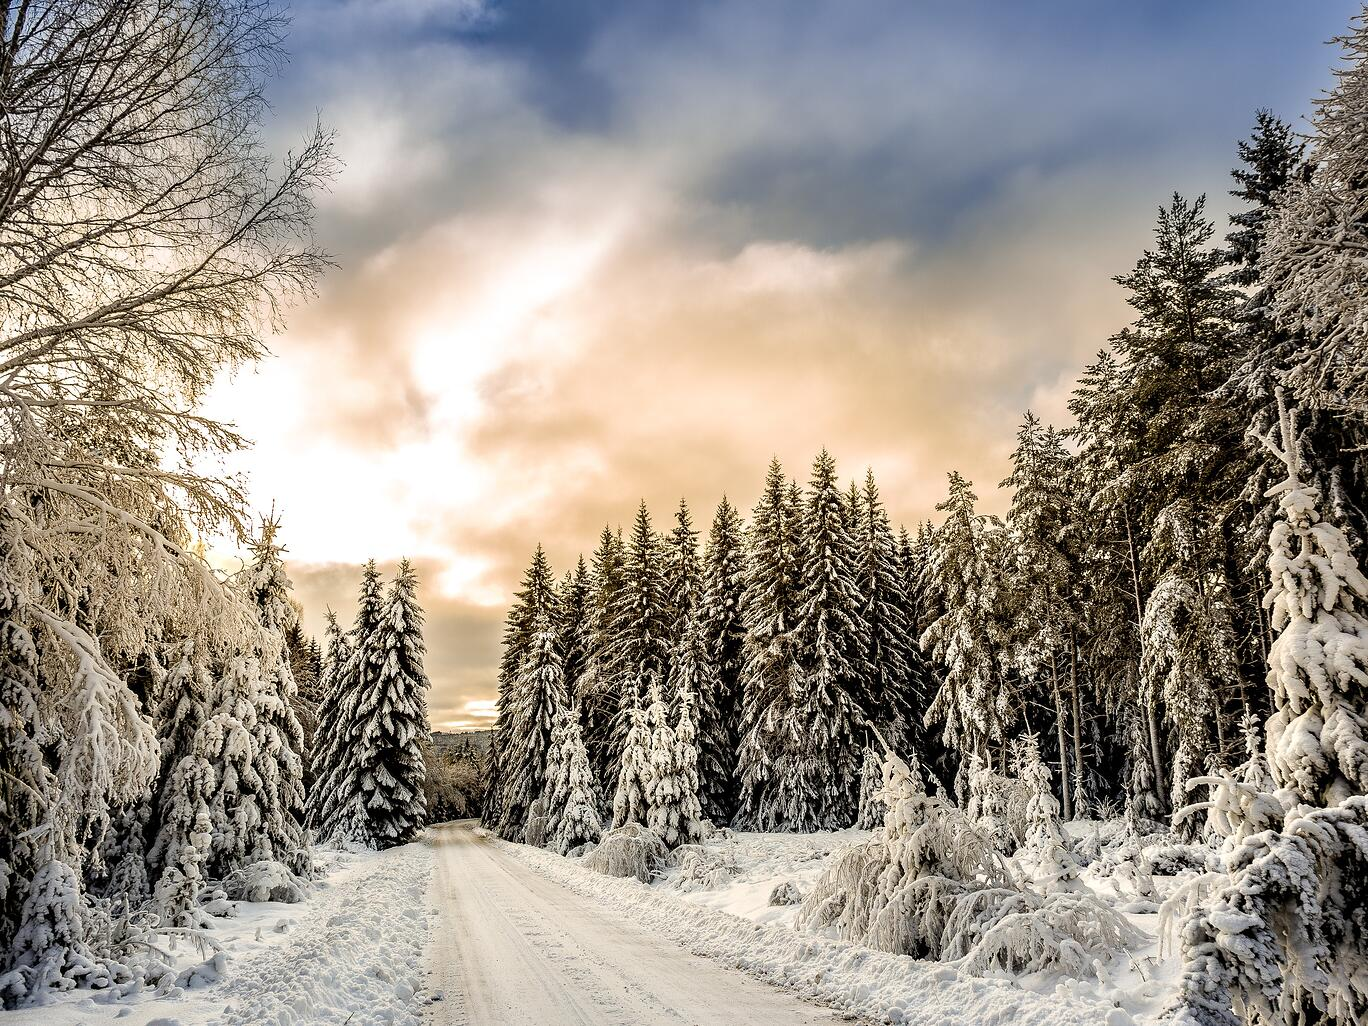 Snow-covered-road-sweden: The importance of getting lost as an expat in Sweden